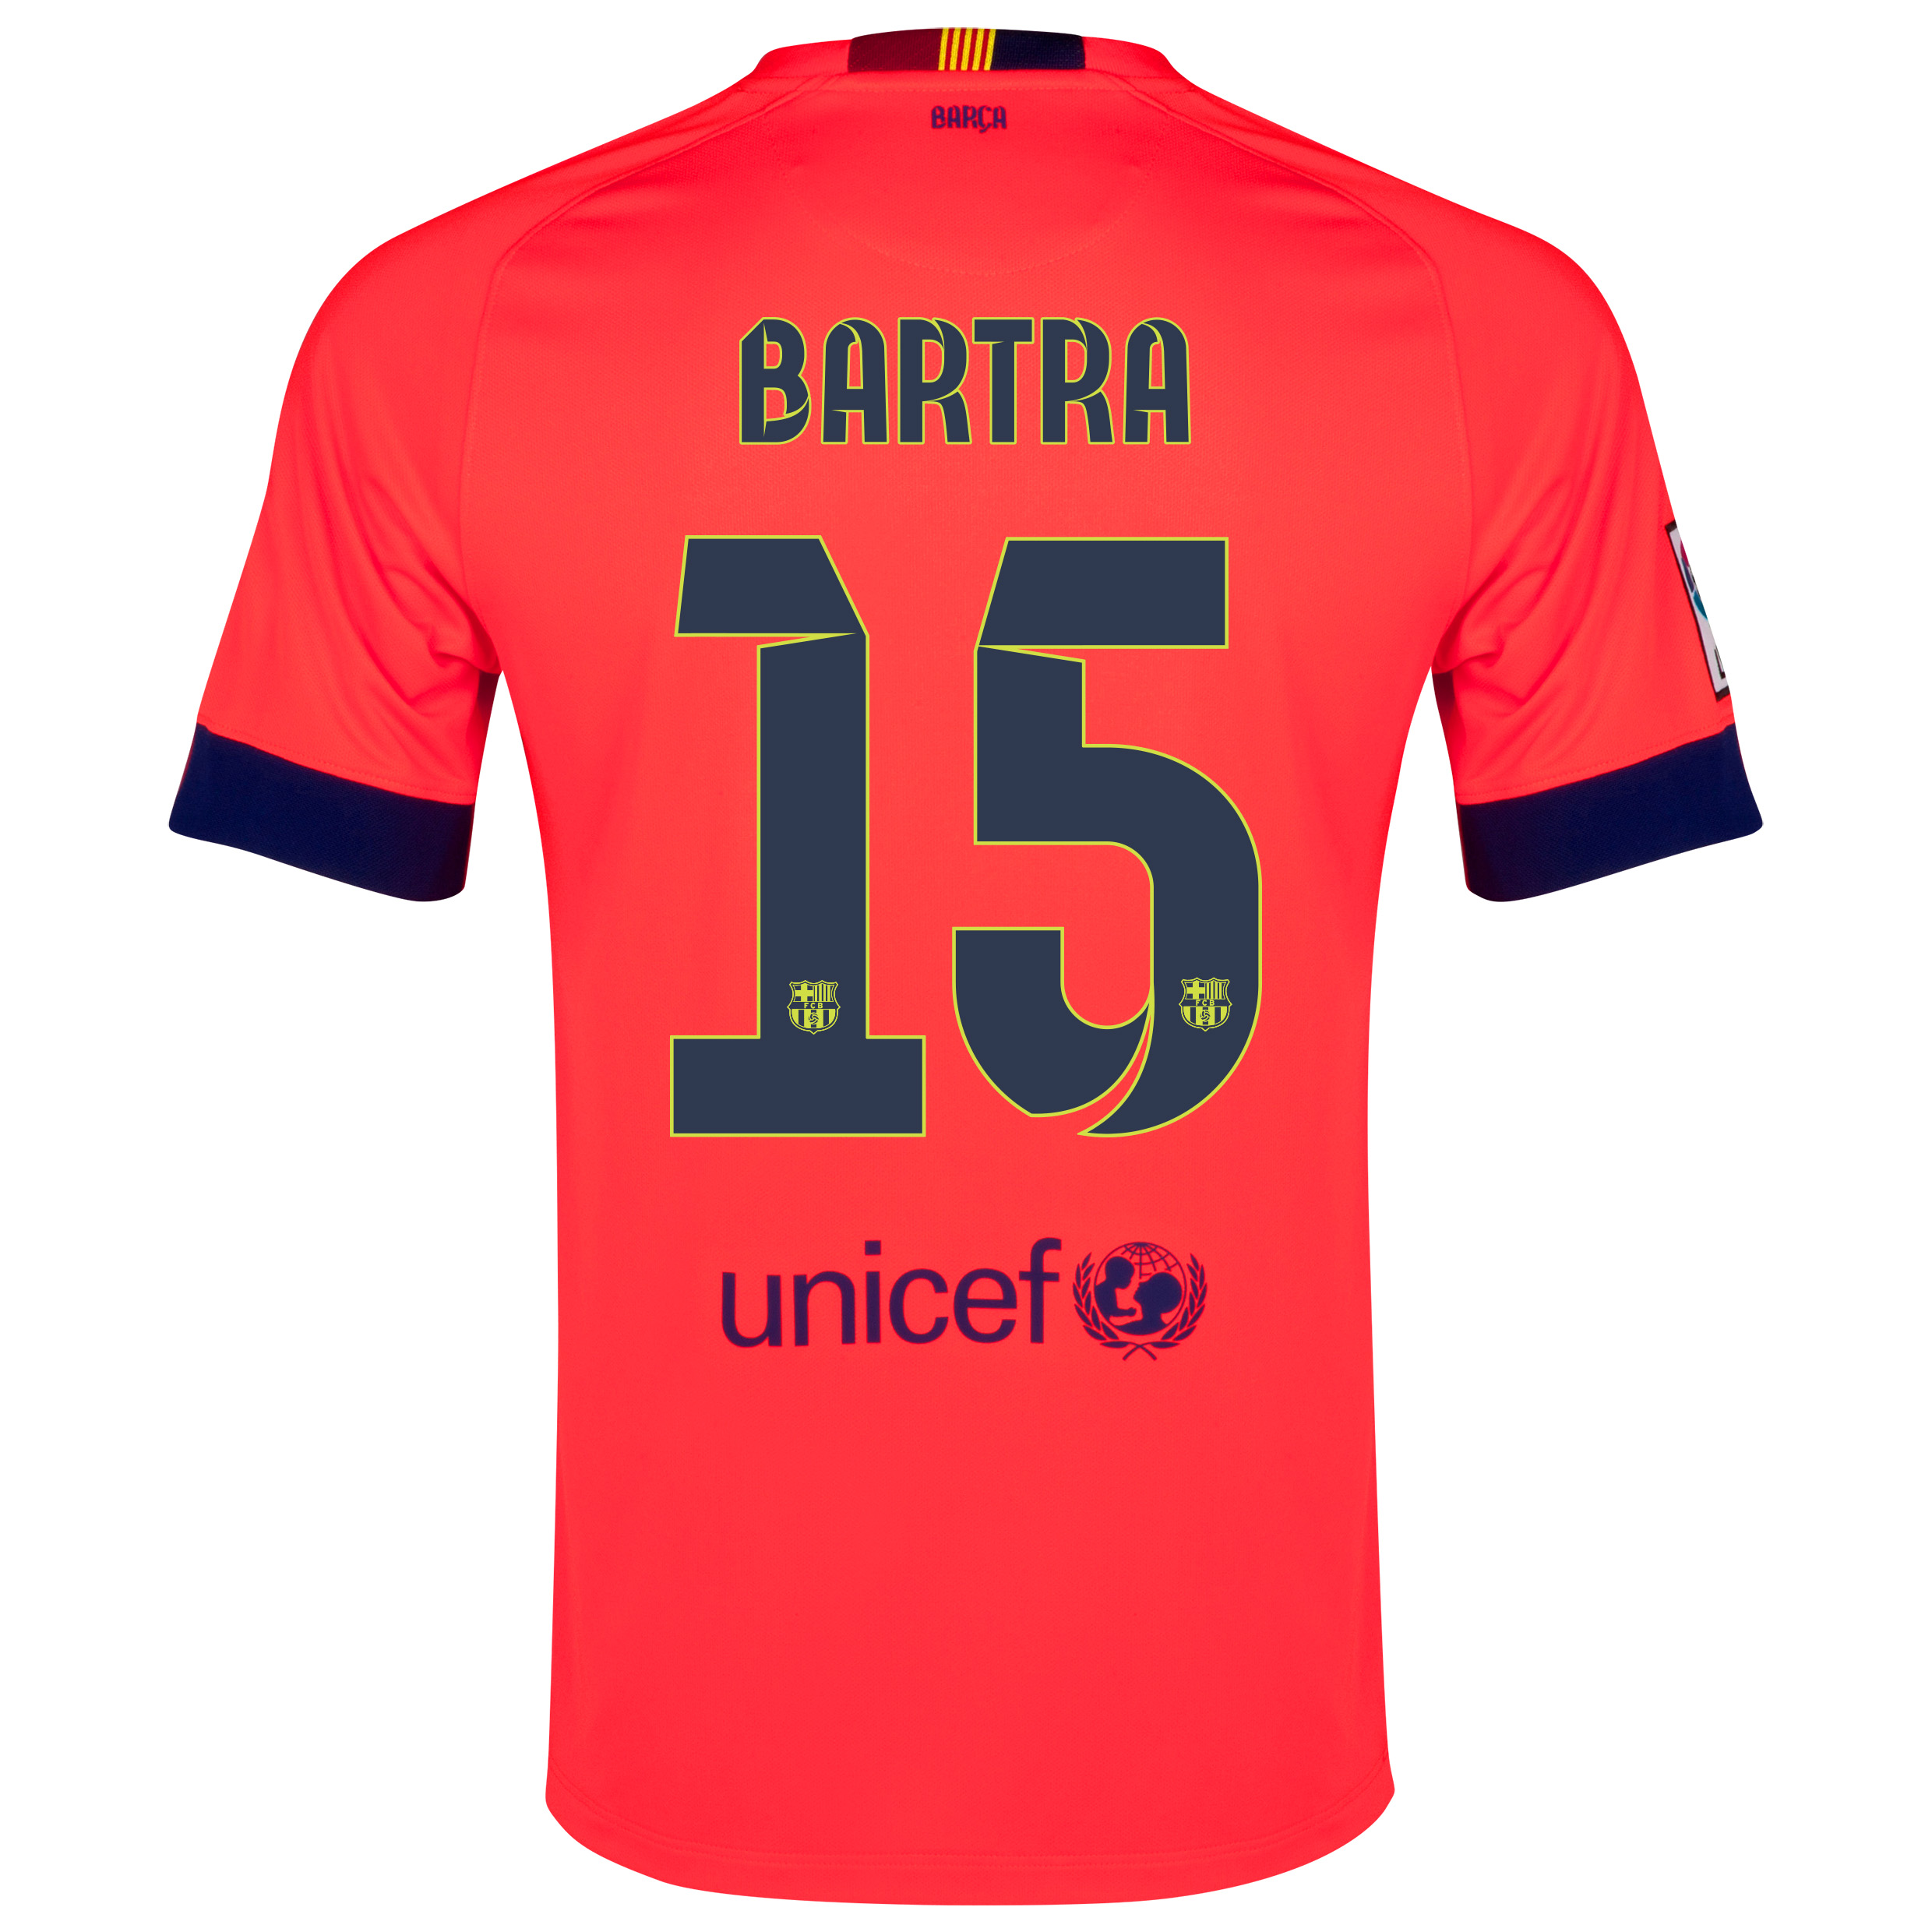 Barcelona Away Shirt 2014/15 - Kids Red with Bartra 15 printing